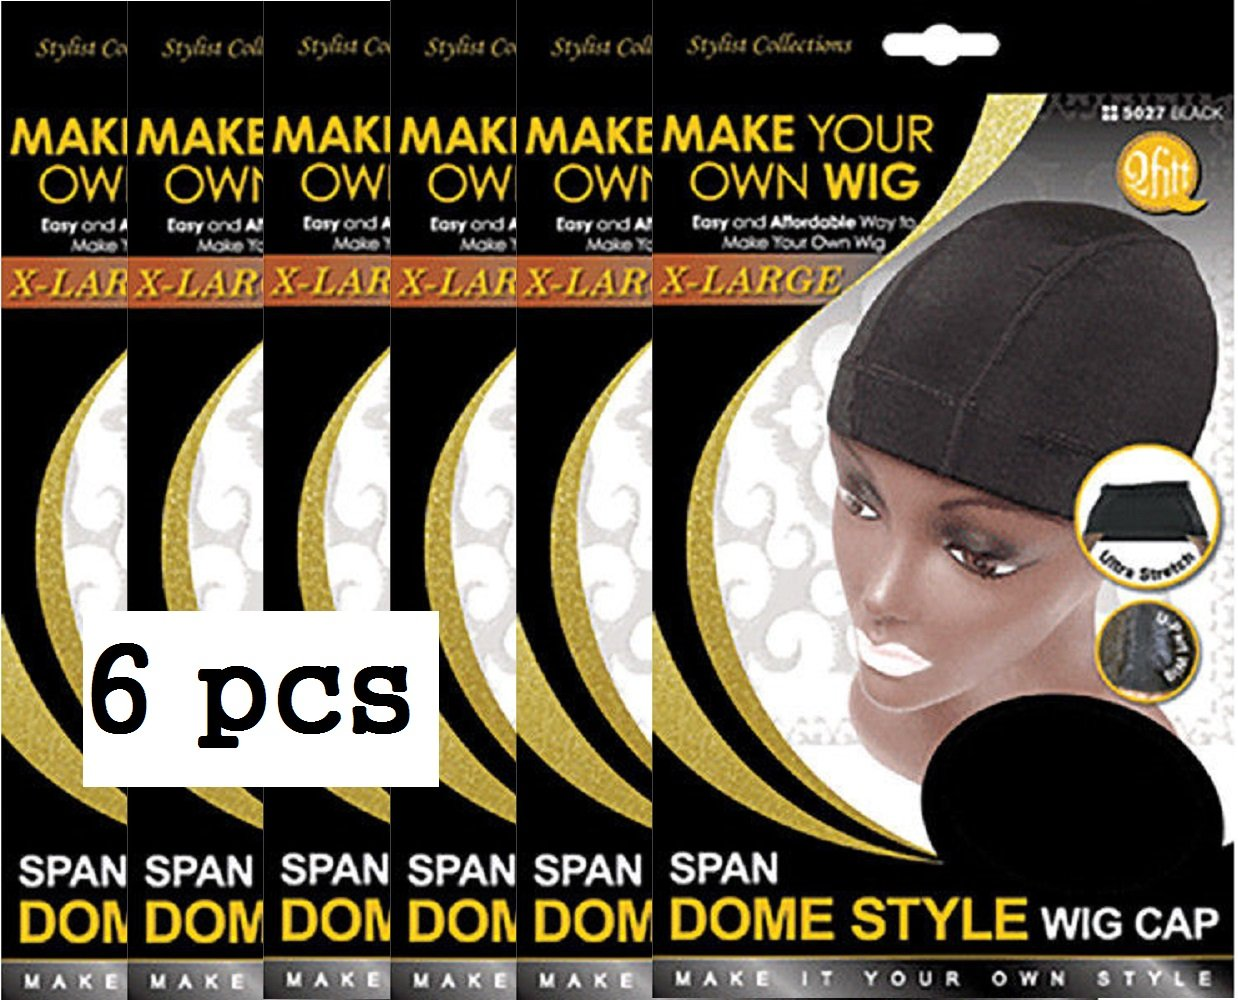 QFitt Dome Style Wig Cap X-LARGE 5027 (3pcs) M&M Headgear Inc.